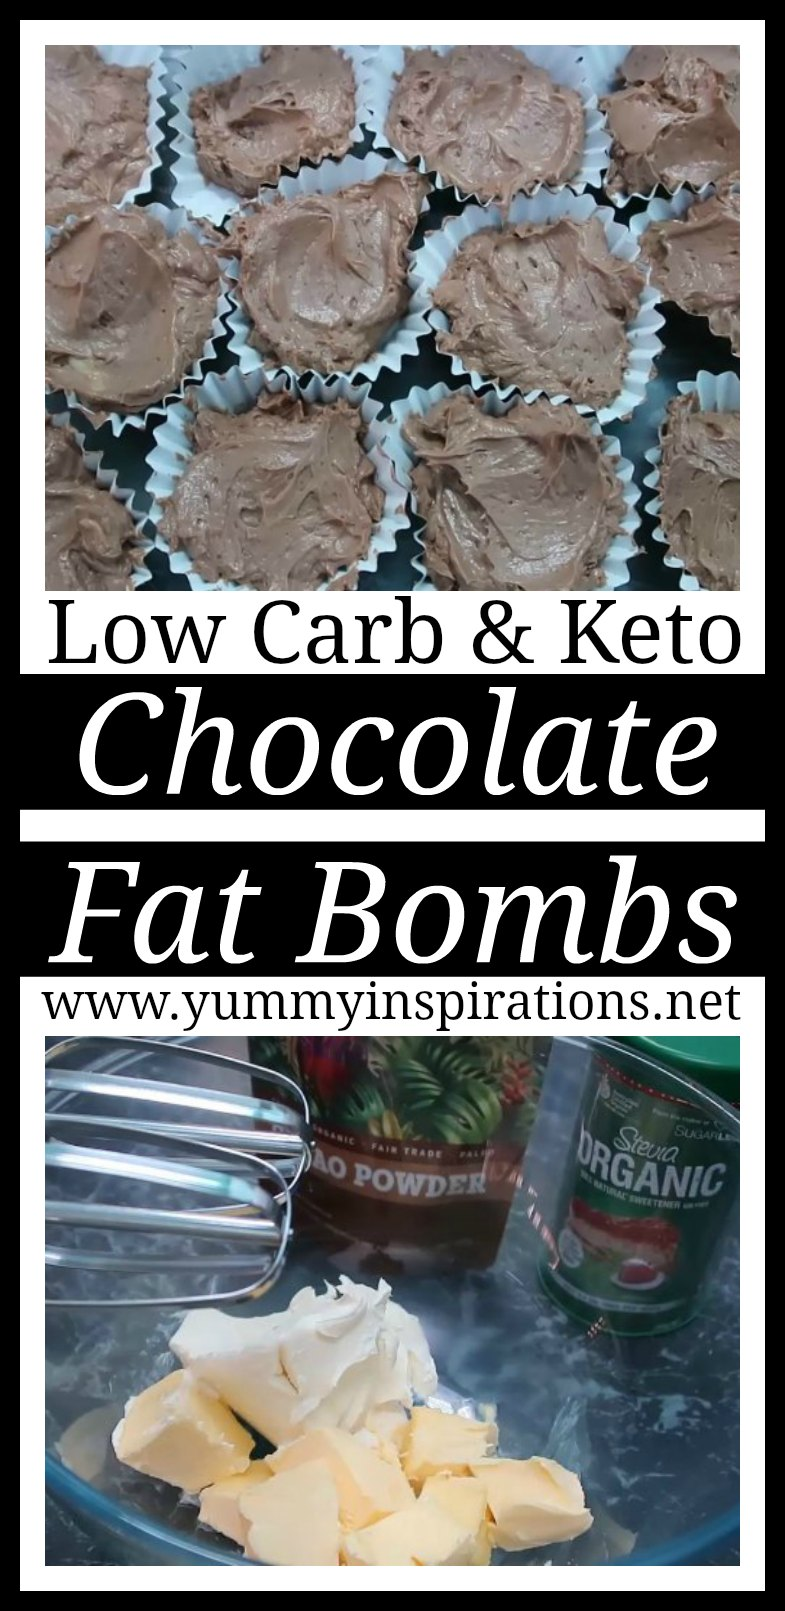 Ketogenic Chocolate Fat Bombs Recipe - Easy Low Carb & Keto Diet Friendly Fat Bomb with cream cheese